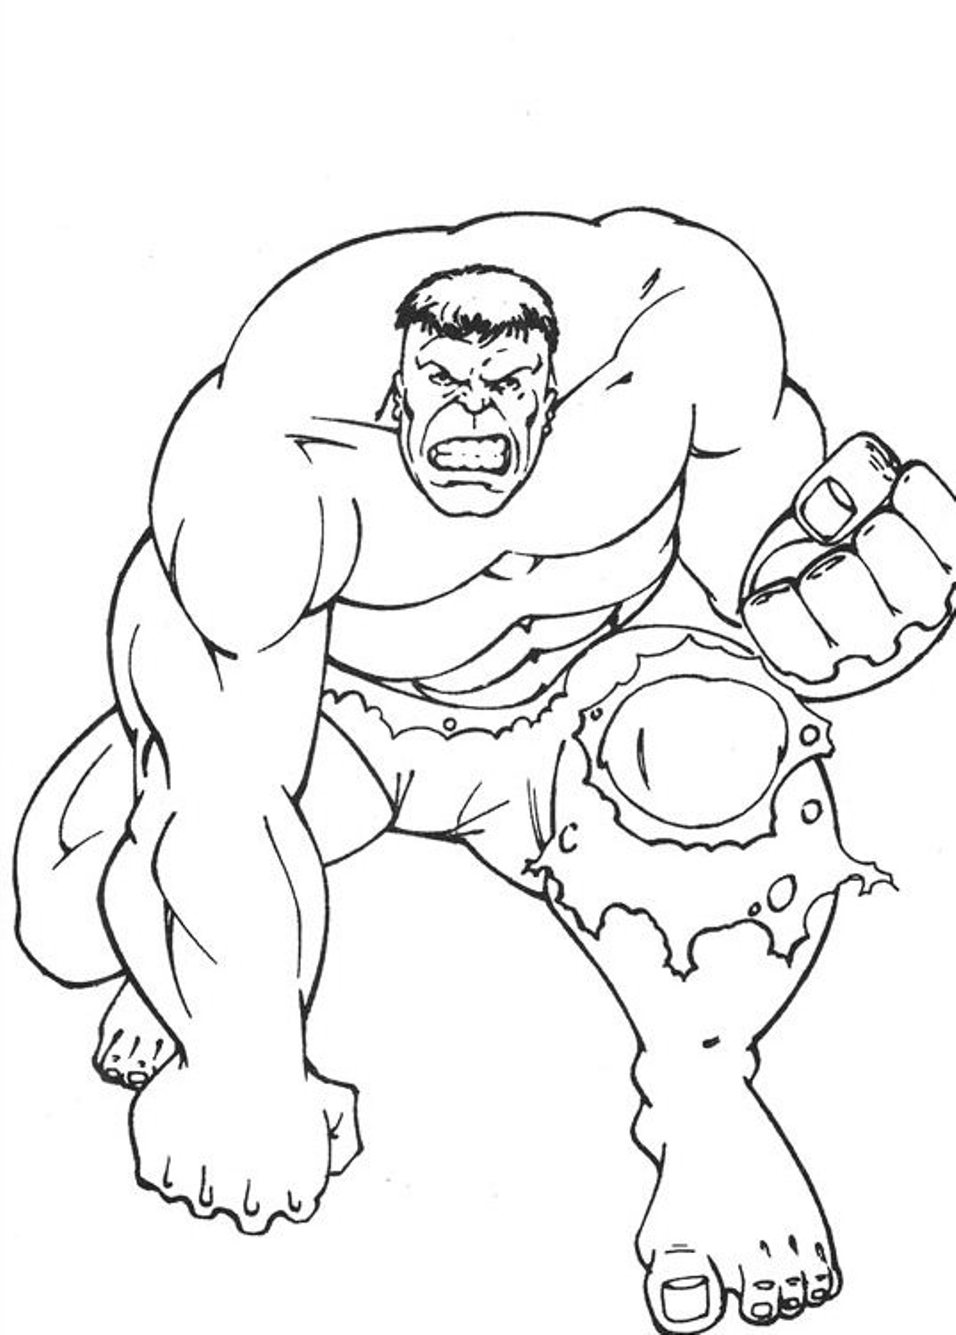 incredible hulk coloring pages only - Avengers Hulk Coloring Pages